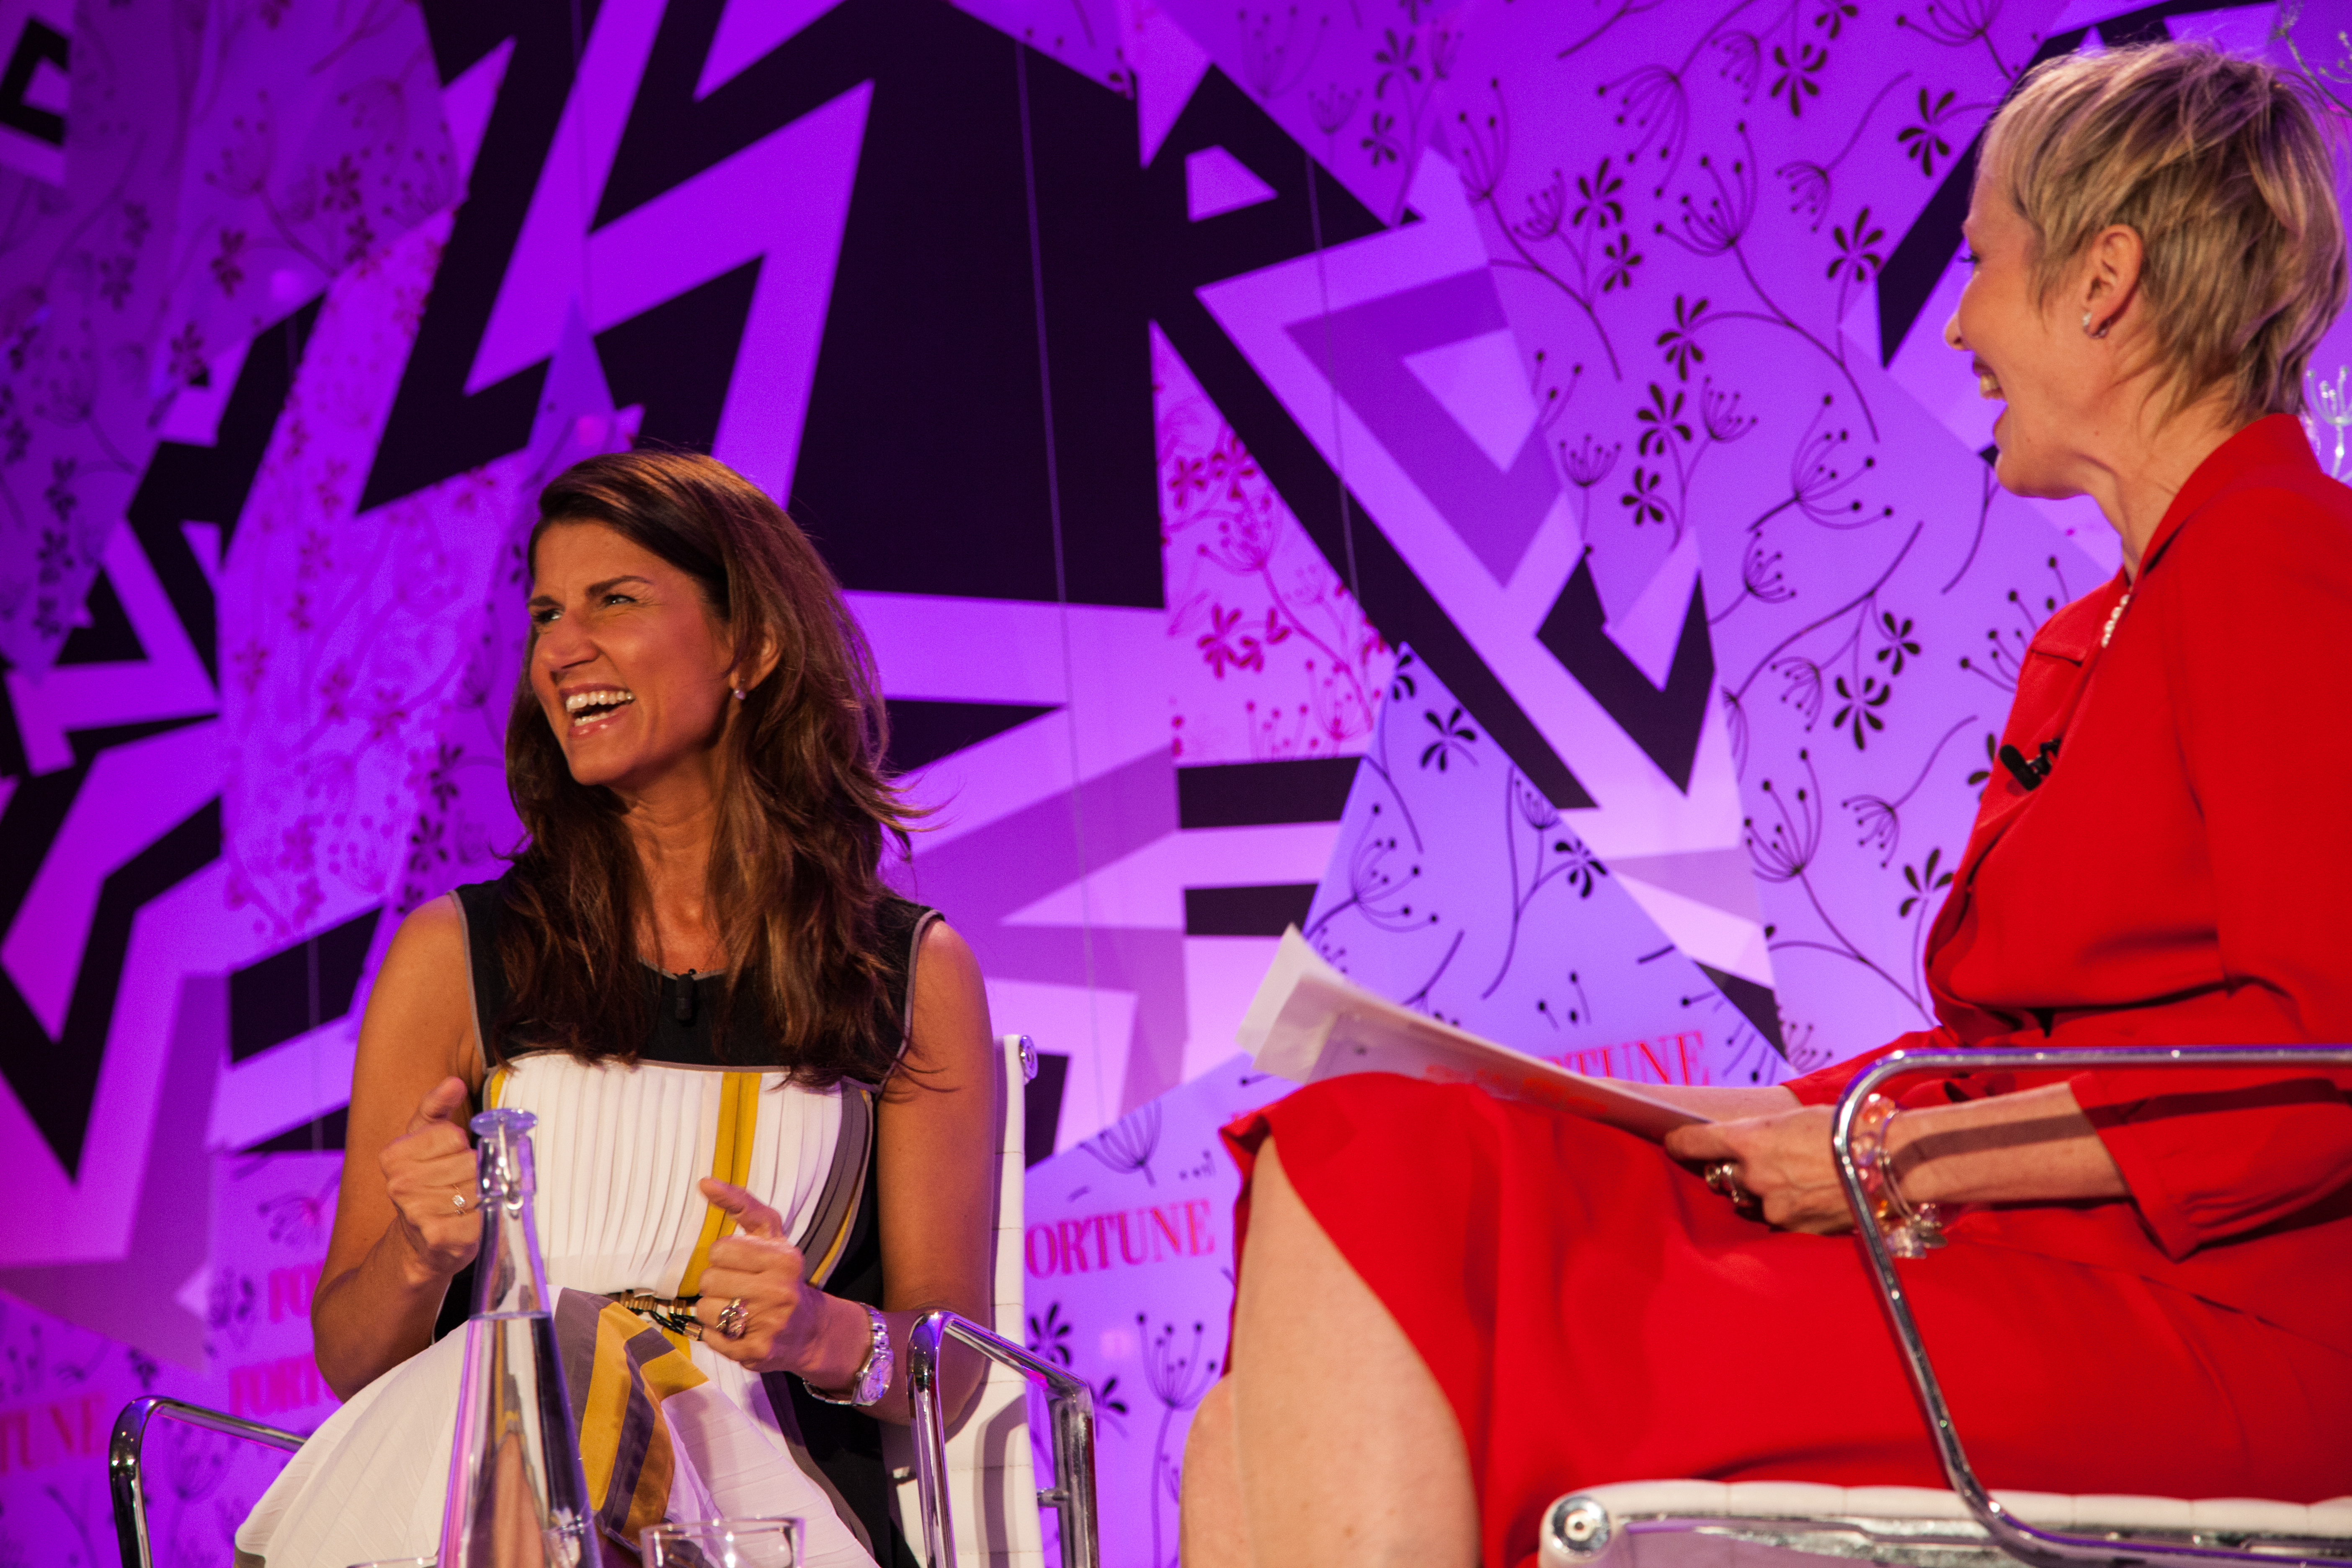 Yonca Brunini of Google talked with moderator Judith Bogner at Fortune's MPW Summit in London.